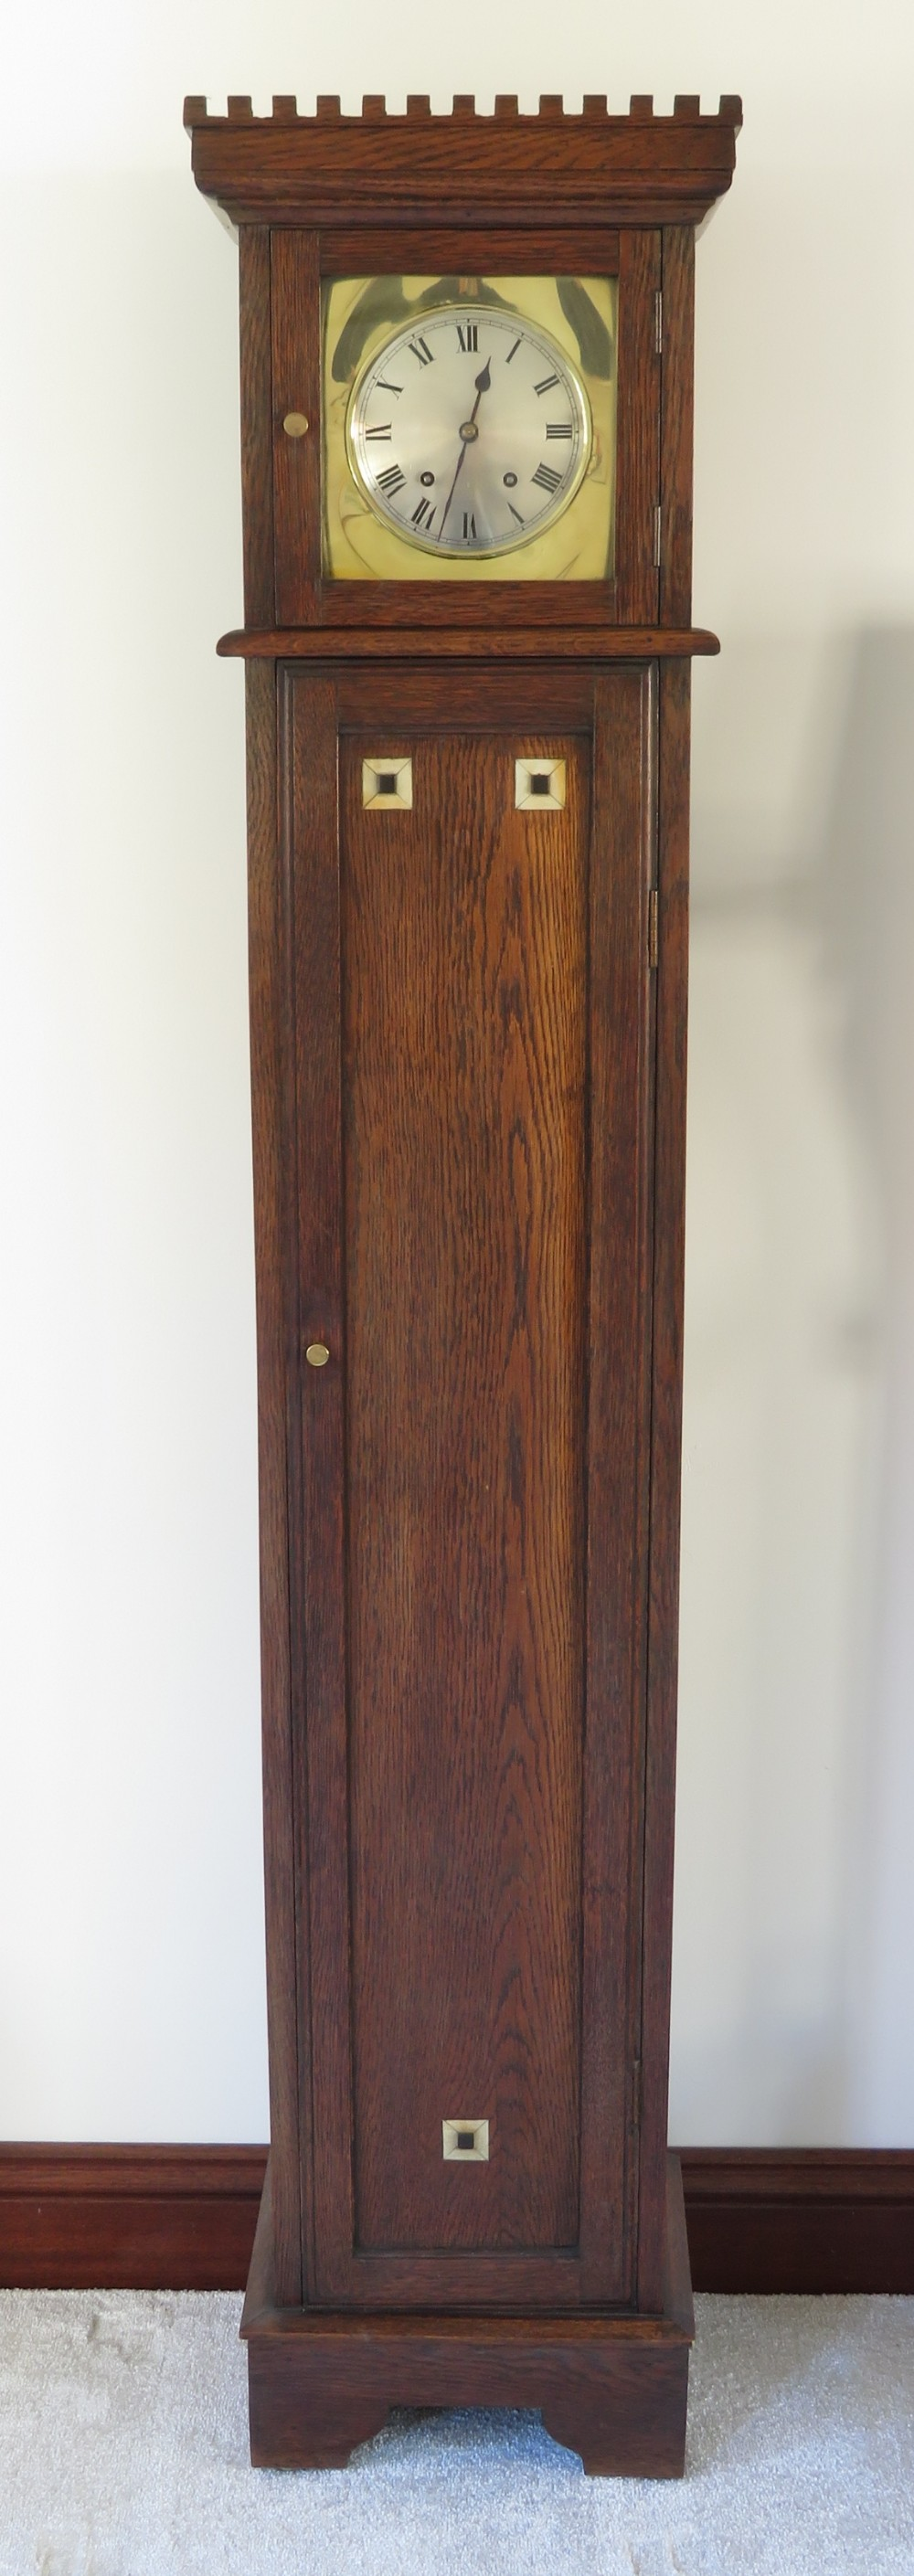 arts and crafts oak railway station waiting room bookcase clock by winterhalder and hofmeier c1890